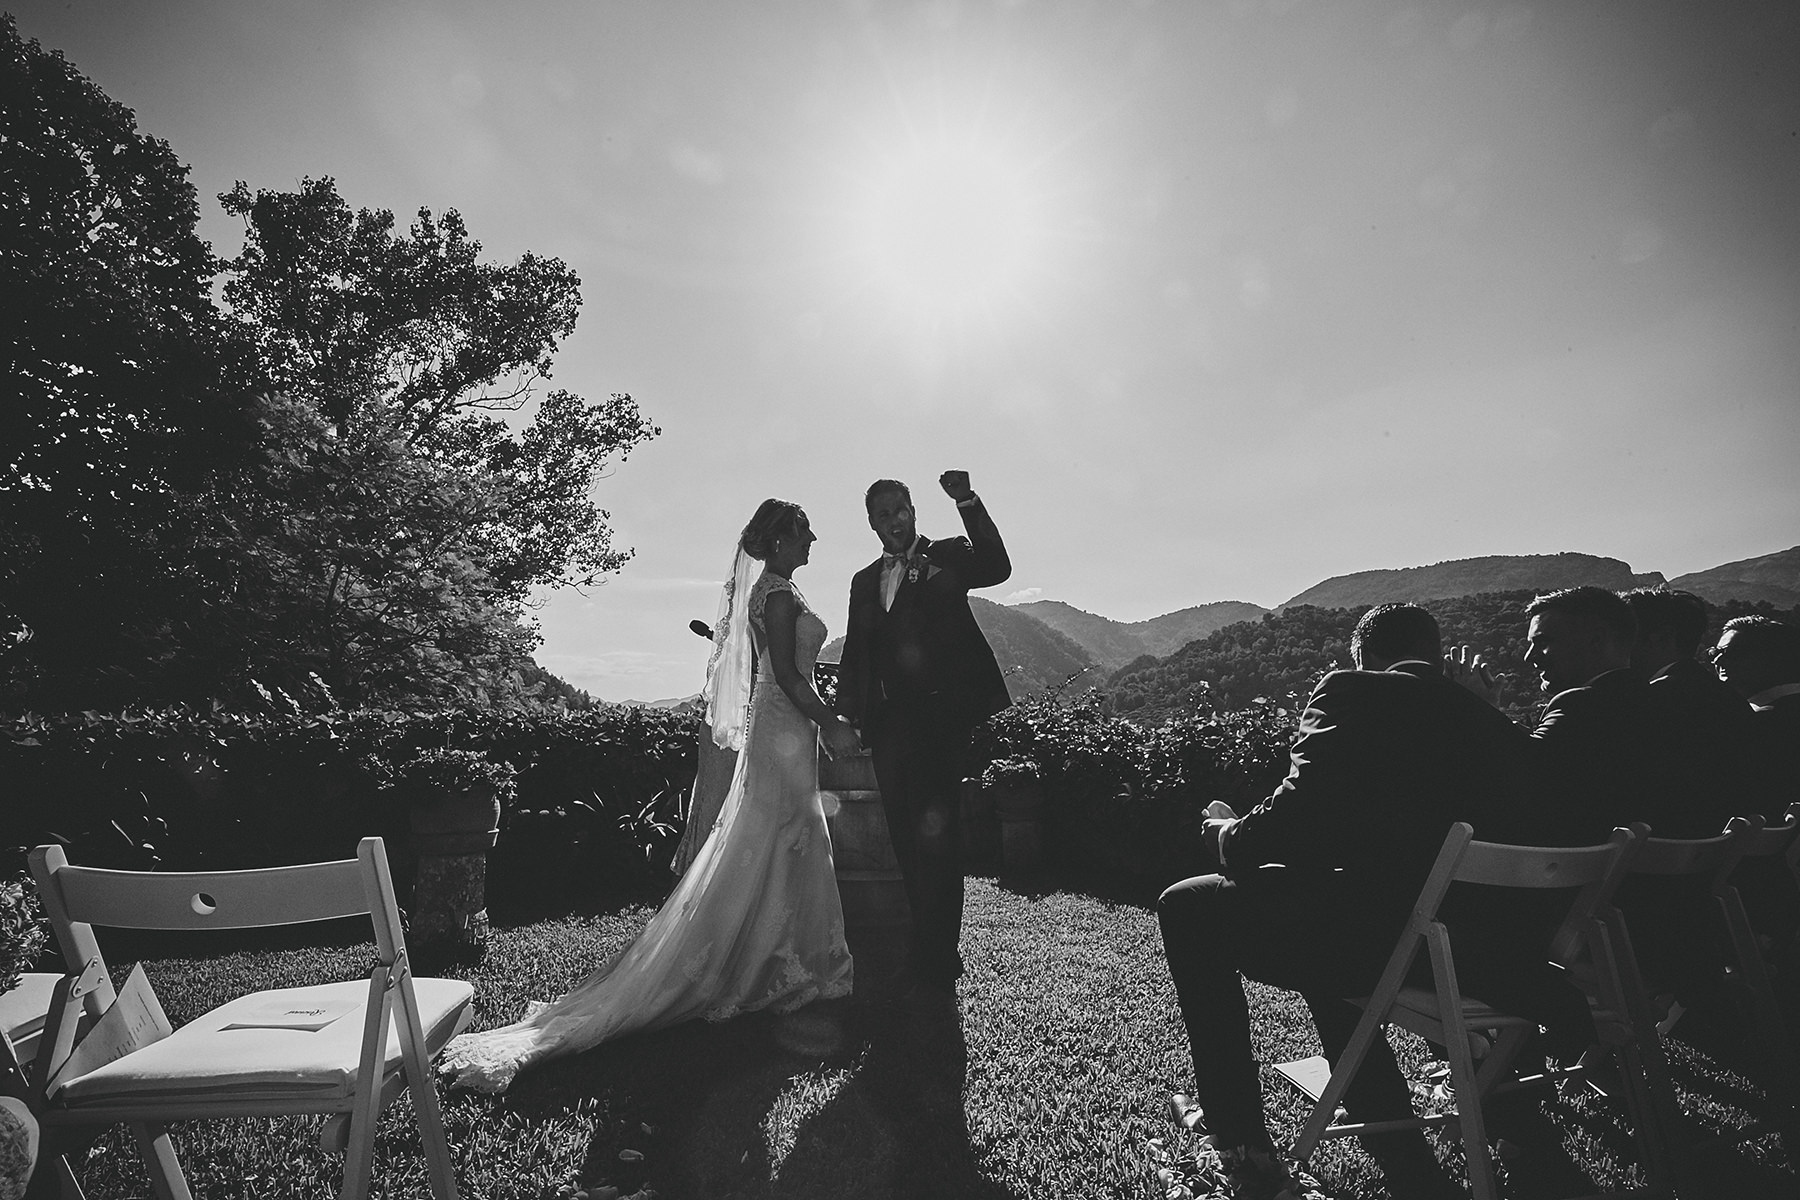 175 - Destination wedding in a magical Mallorca